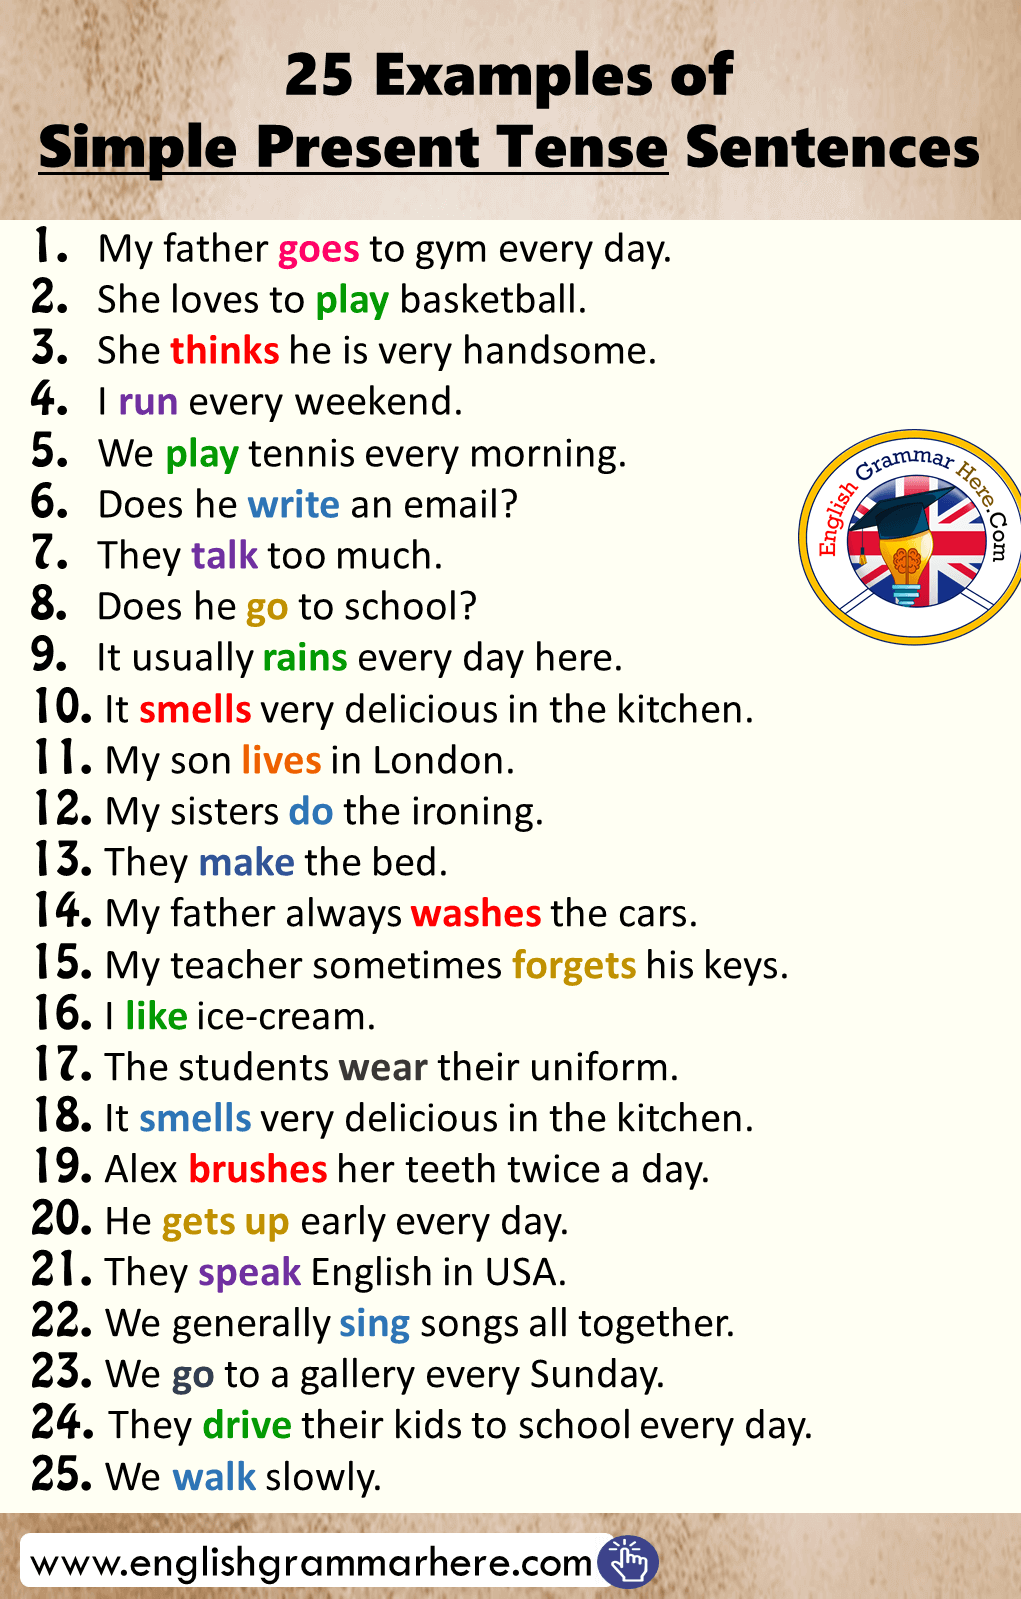 25 Examples of Simple Present Tense Sentences - English